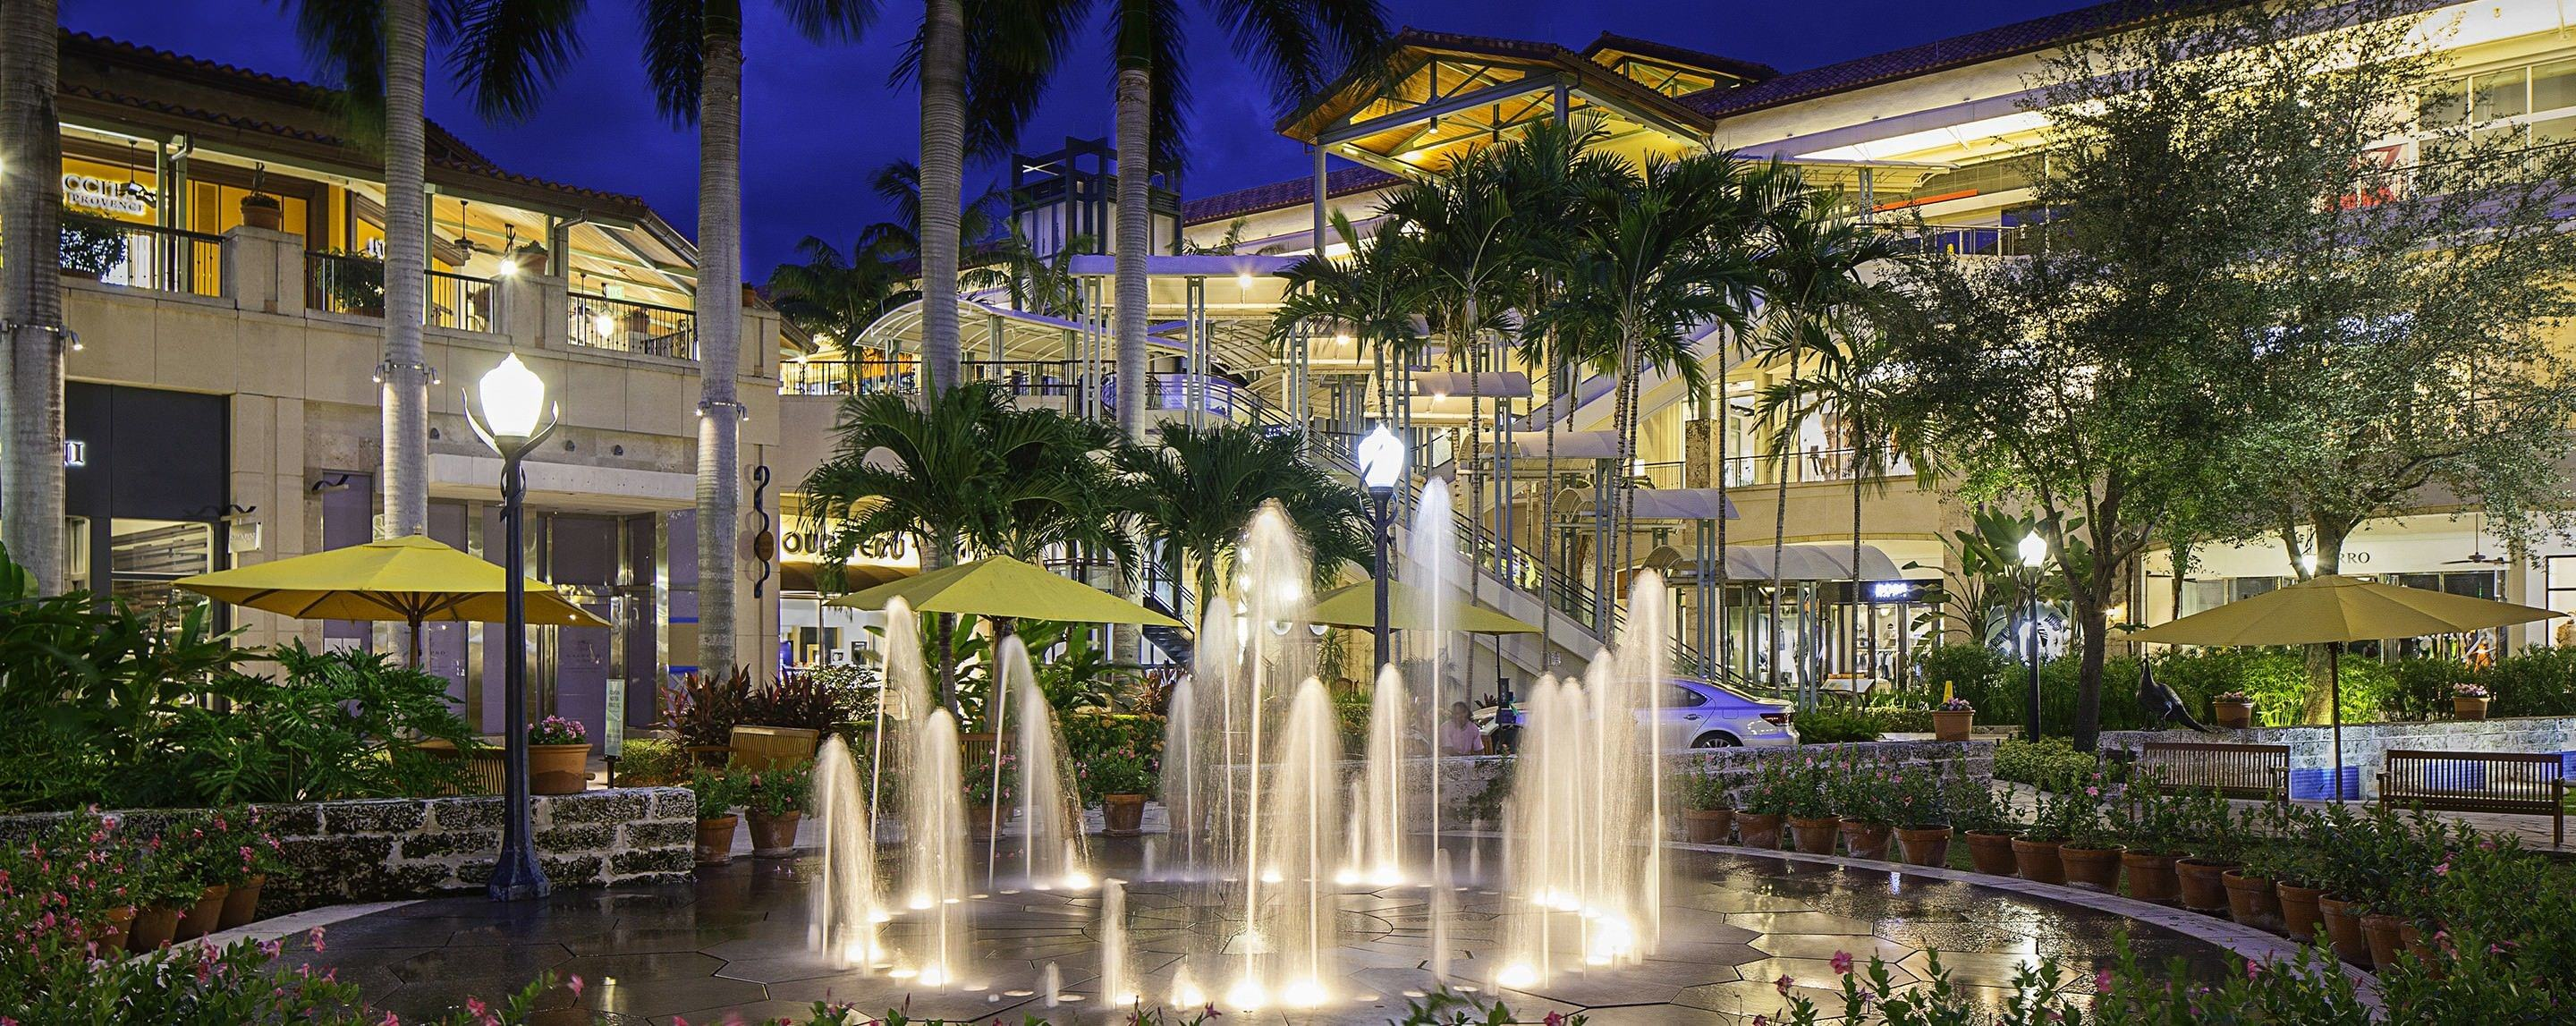 Outside a property at night, a fountain is lit up surrounded by palm trees and potted plants to decorate the property.